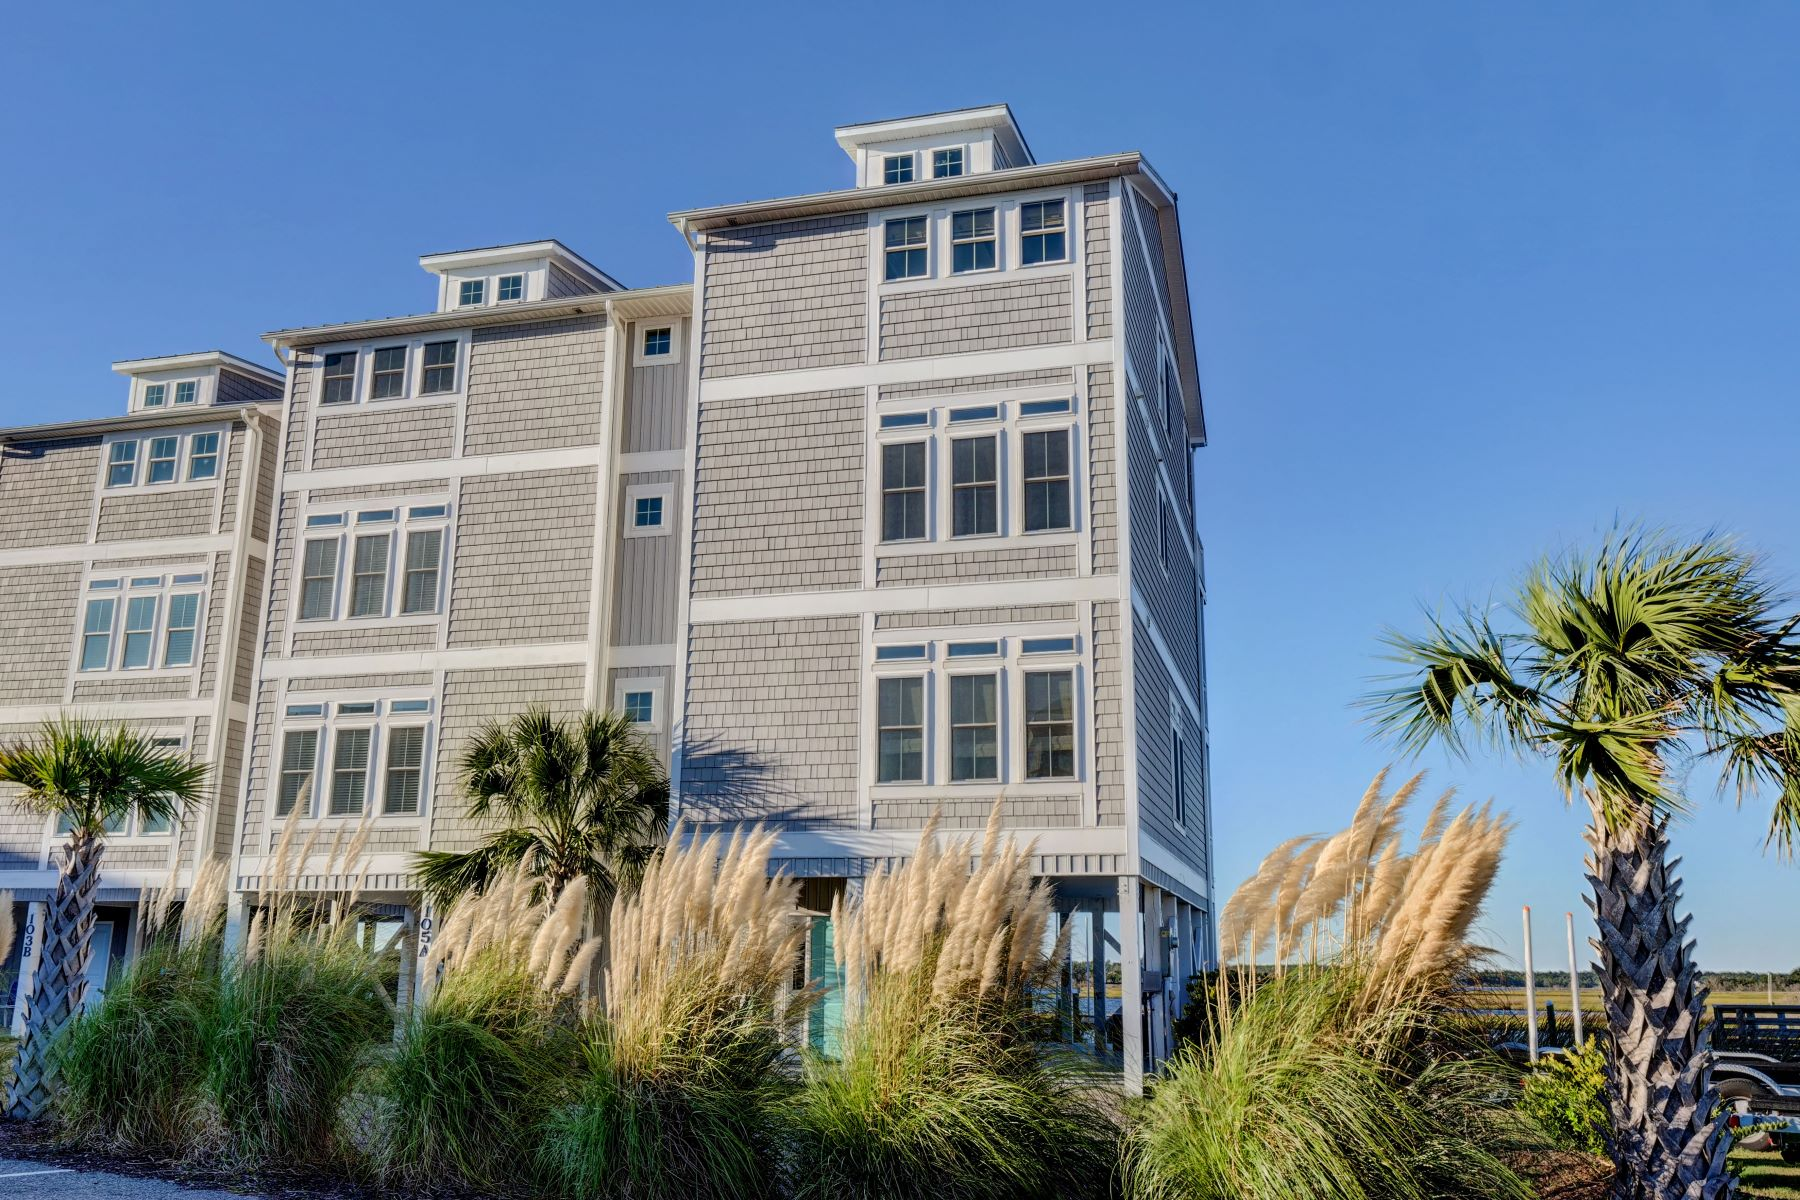 townhouses for Active at Deepwater Dream 105 B Bluewater Lane Surf City, North Carolina 28445 United States